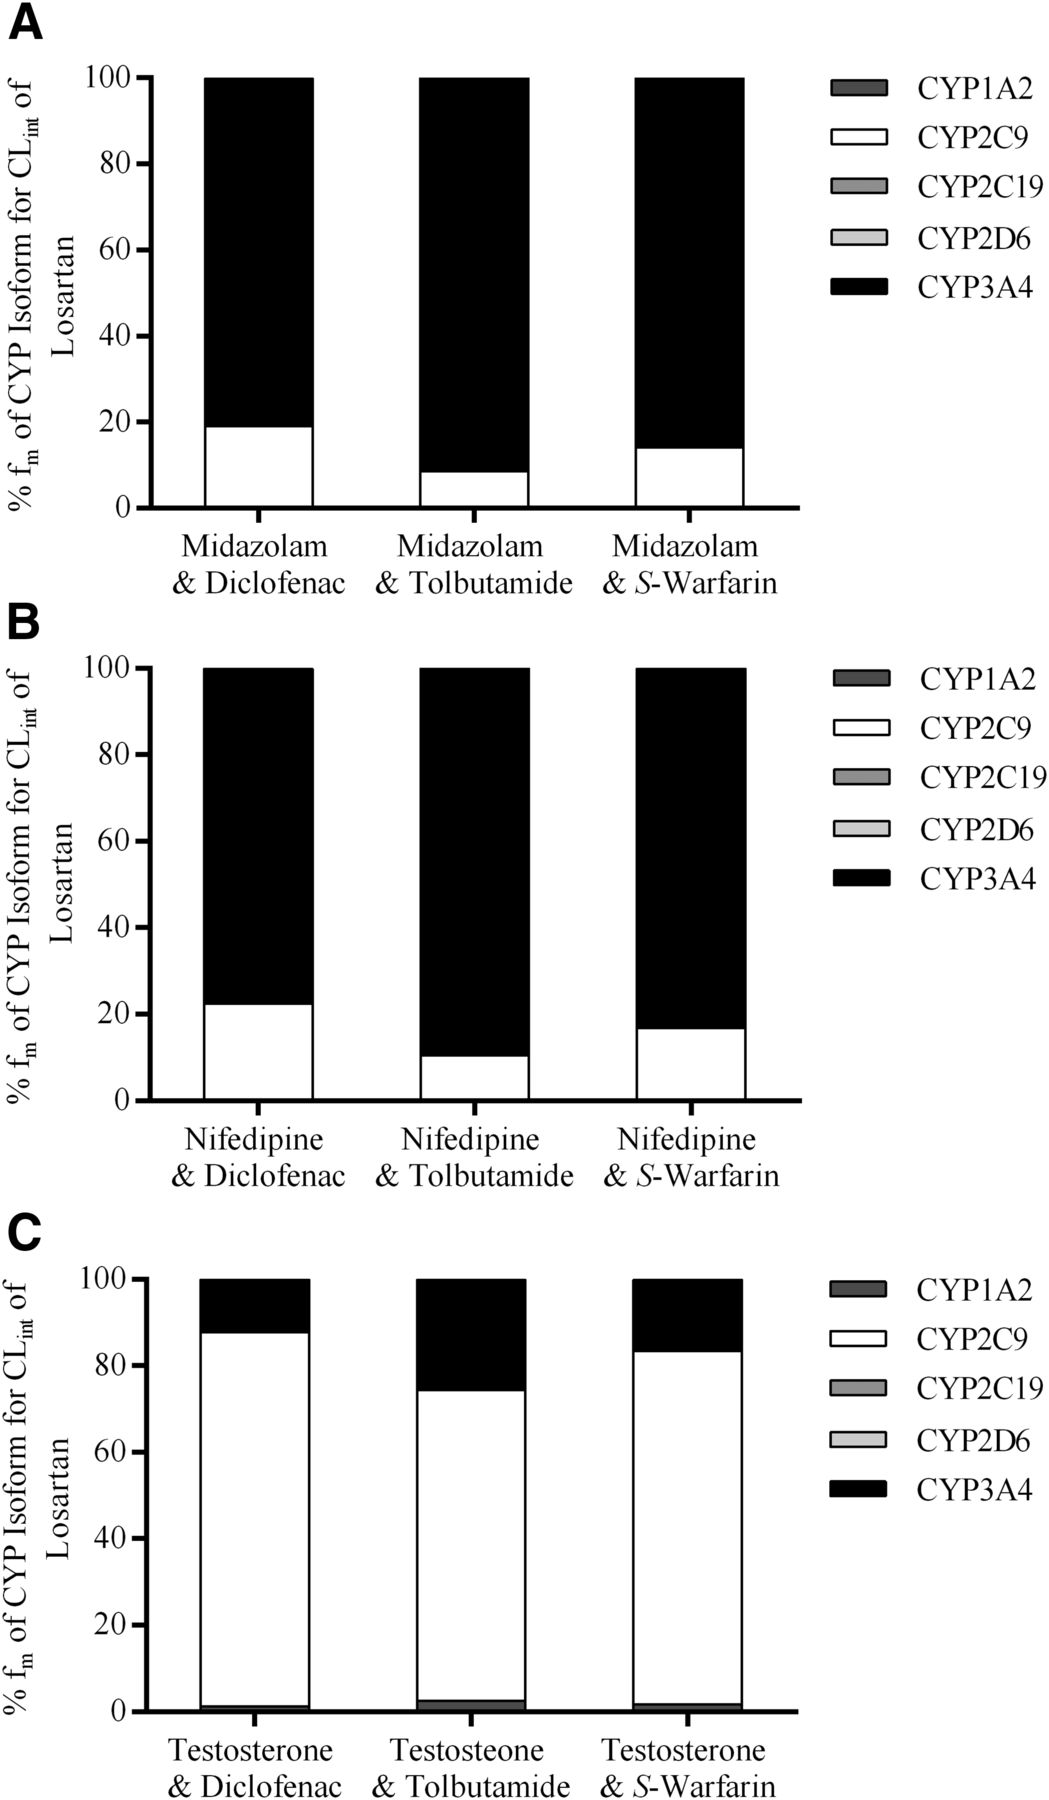 Impact of Probe Substrate Selection on Cytochrome P450